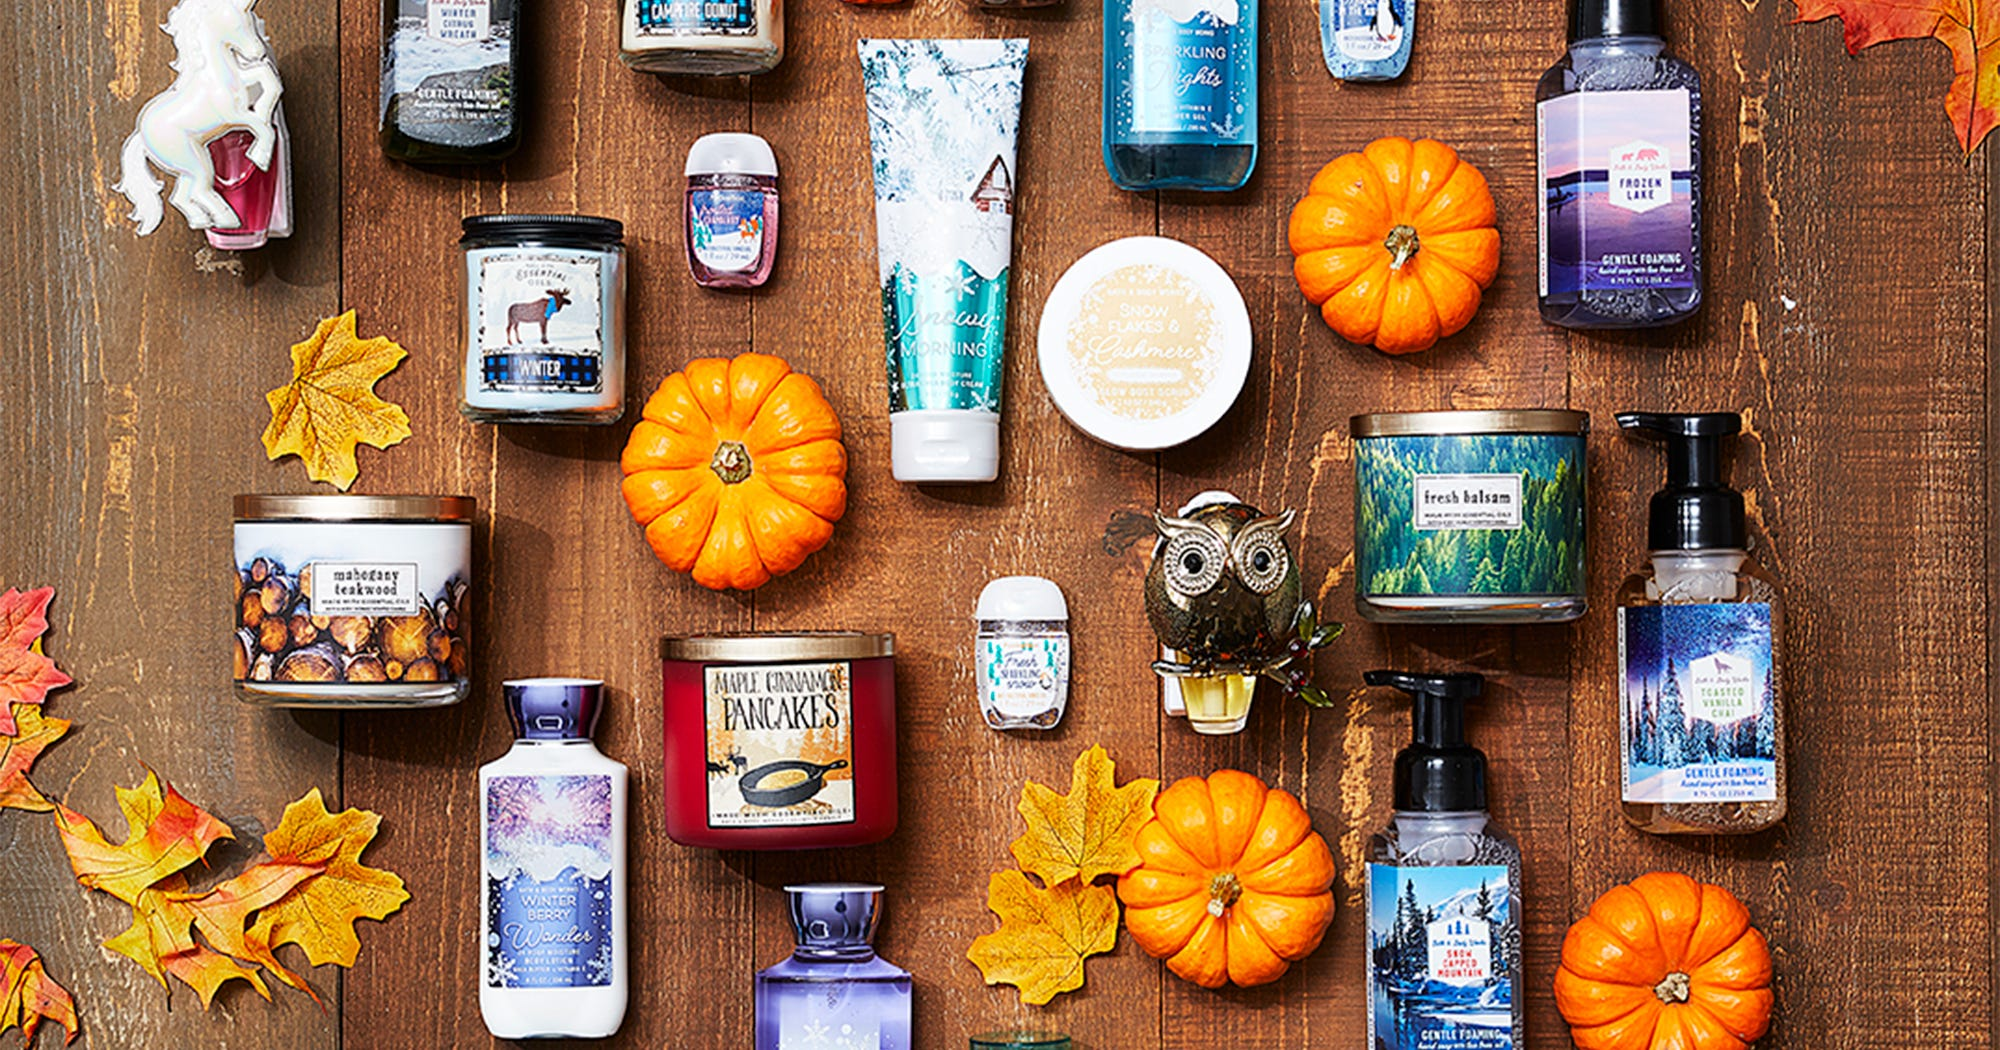 Get Bath And Body Works Buy One Get One Free Sale Now